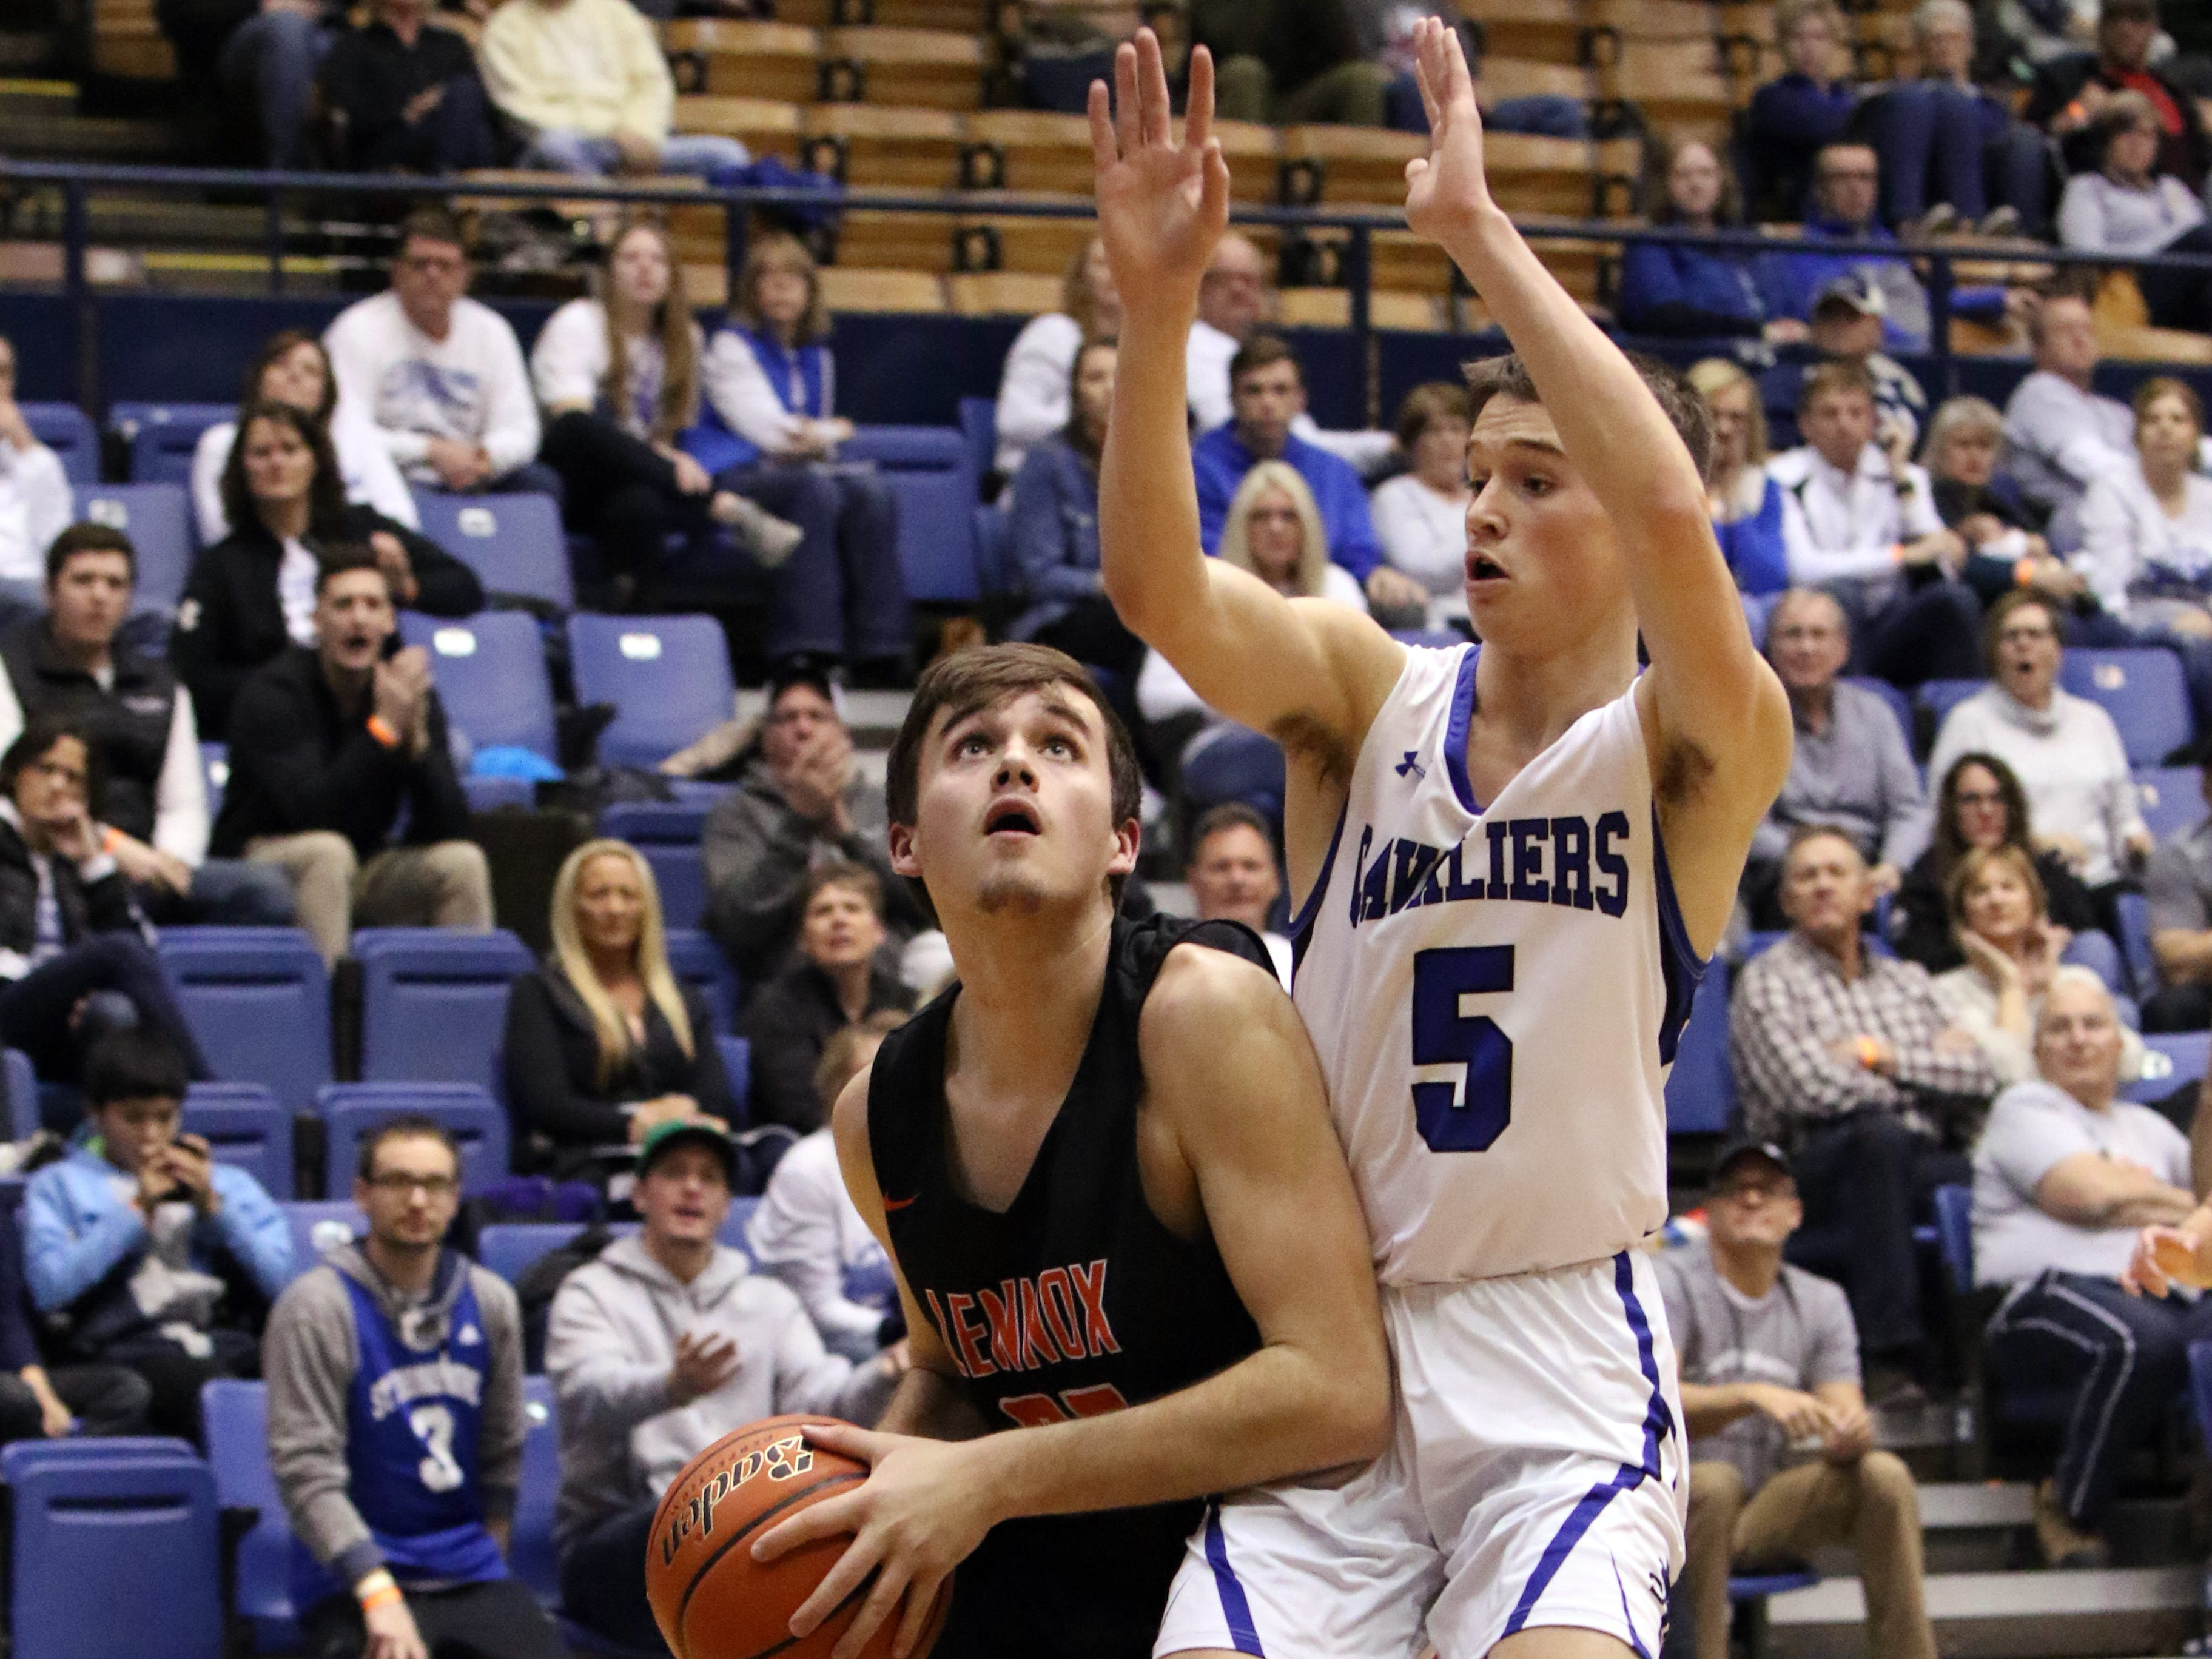 Kaleb Johnson of Lennox eyes the basket as Michael Gylten of St Thomas More defends during Thursday's game at the Arena.